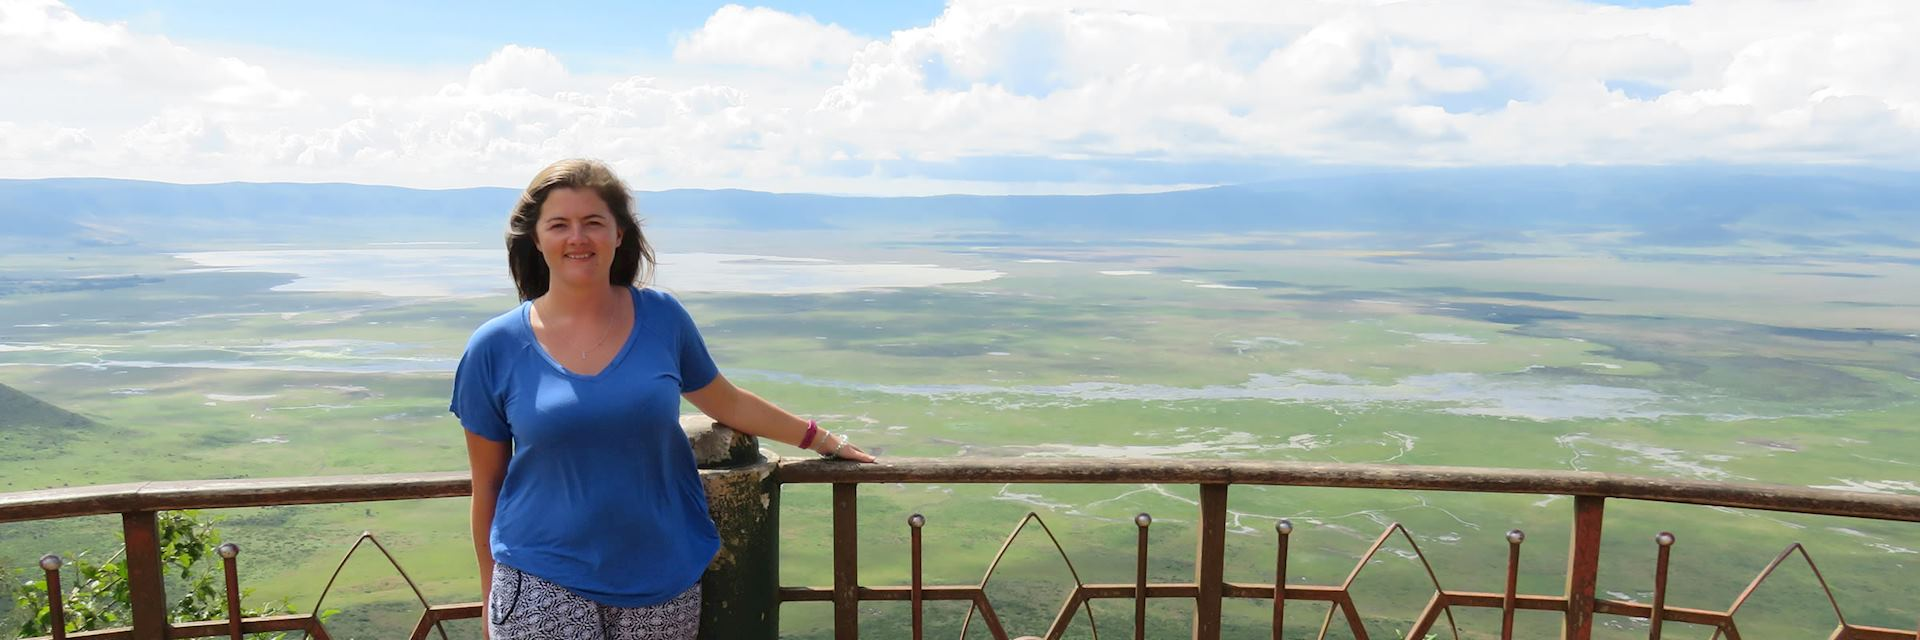 Emily at the Ngorongoro Crater viewing point